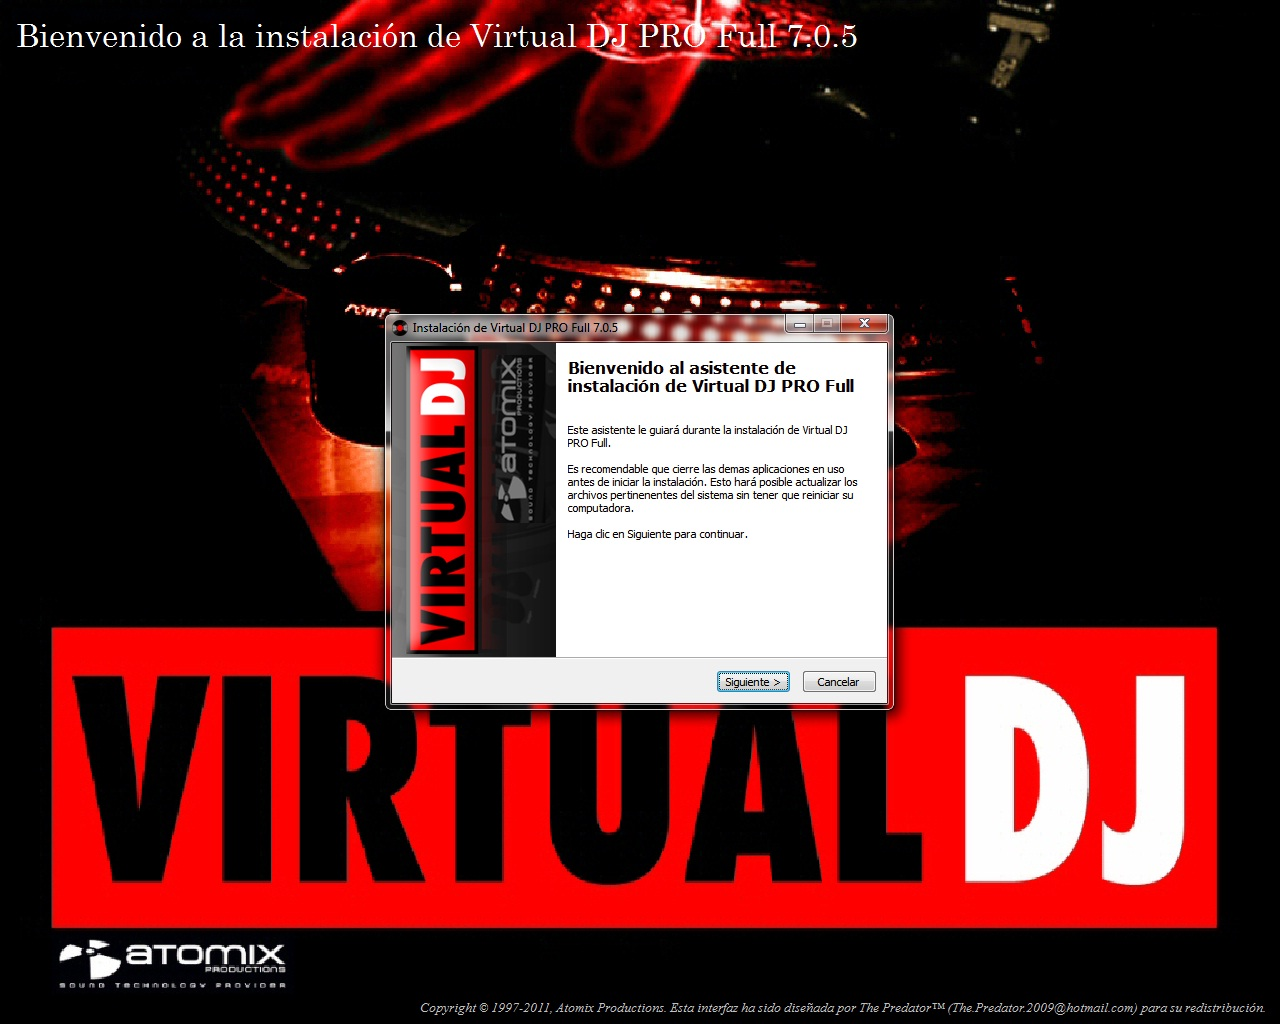 Download Atomix Virtual Dj PRO 7 0. 5 Build 377 Torrent, Rapidgator, Rapids